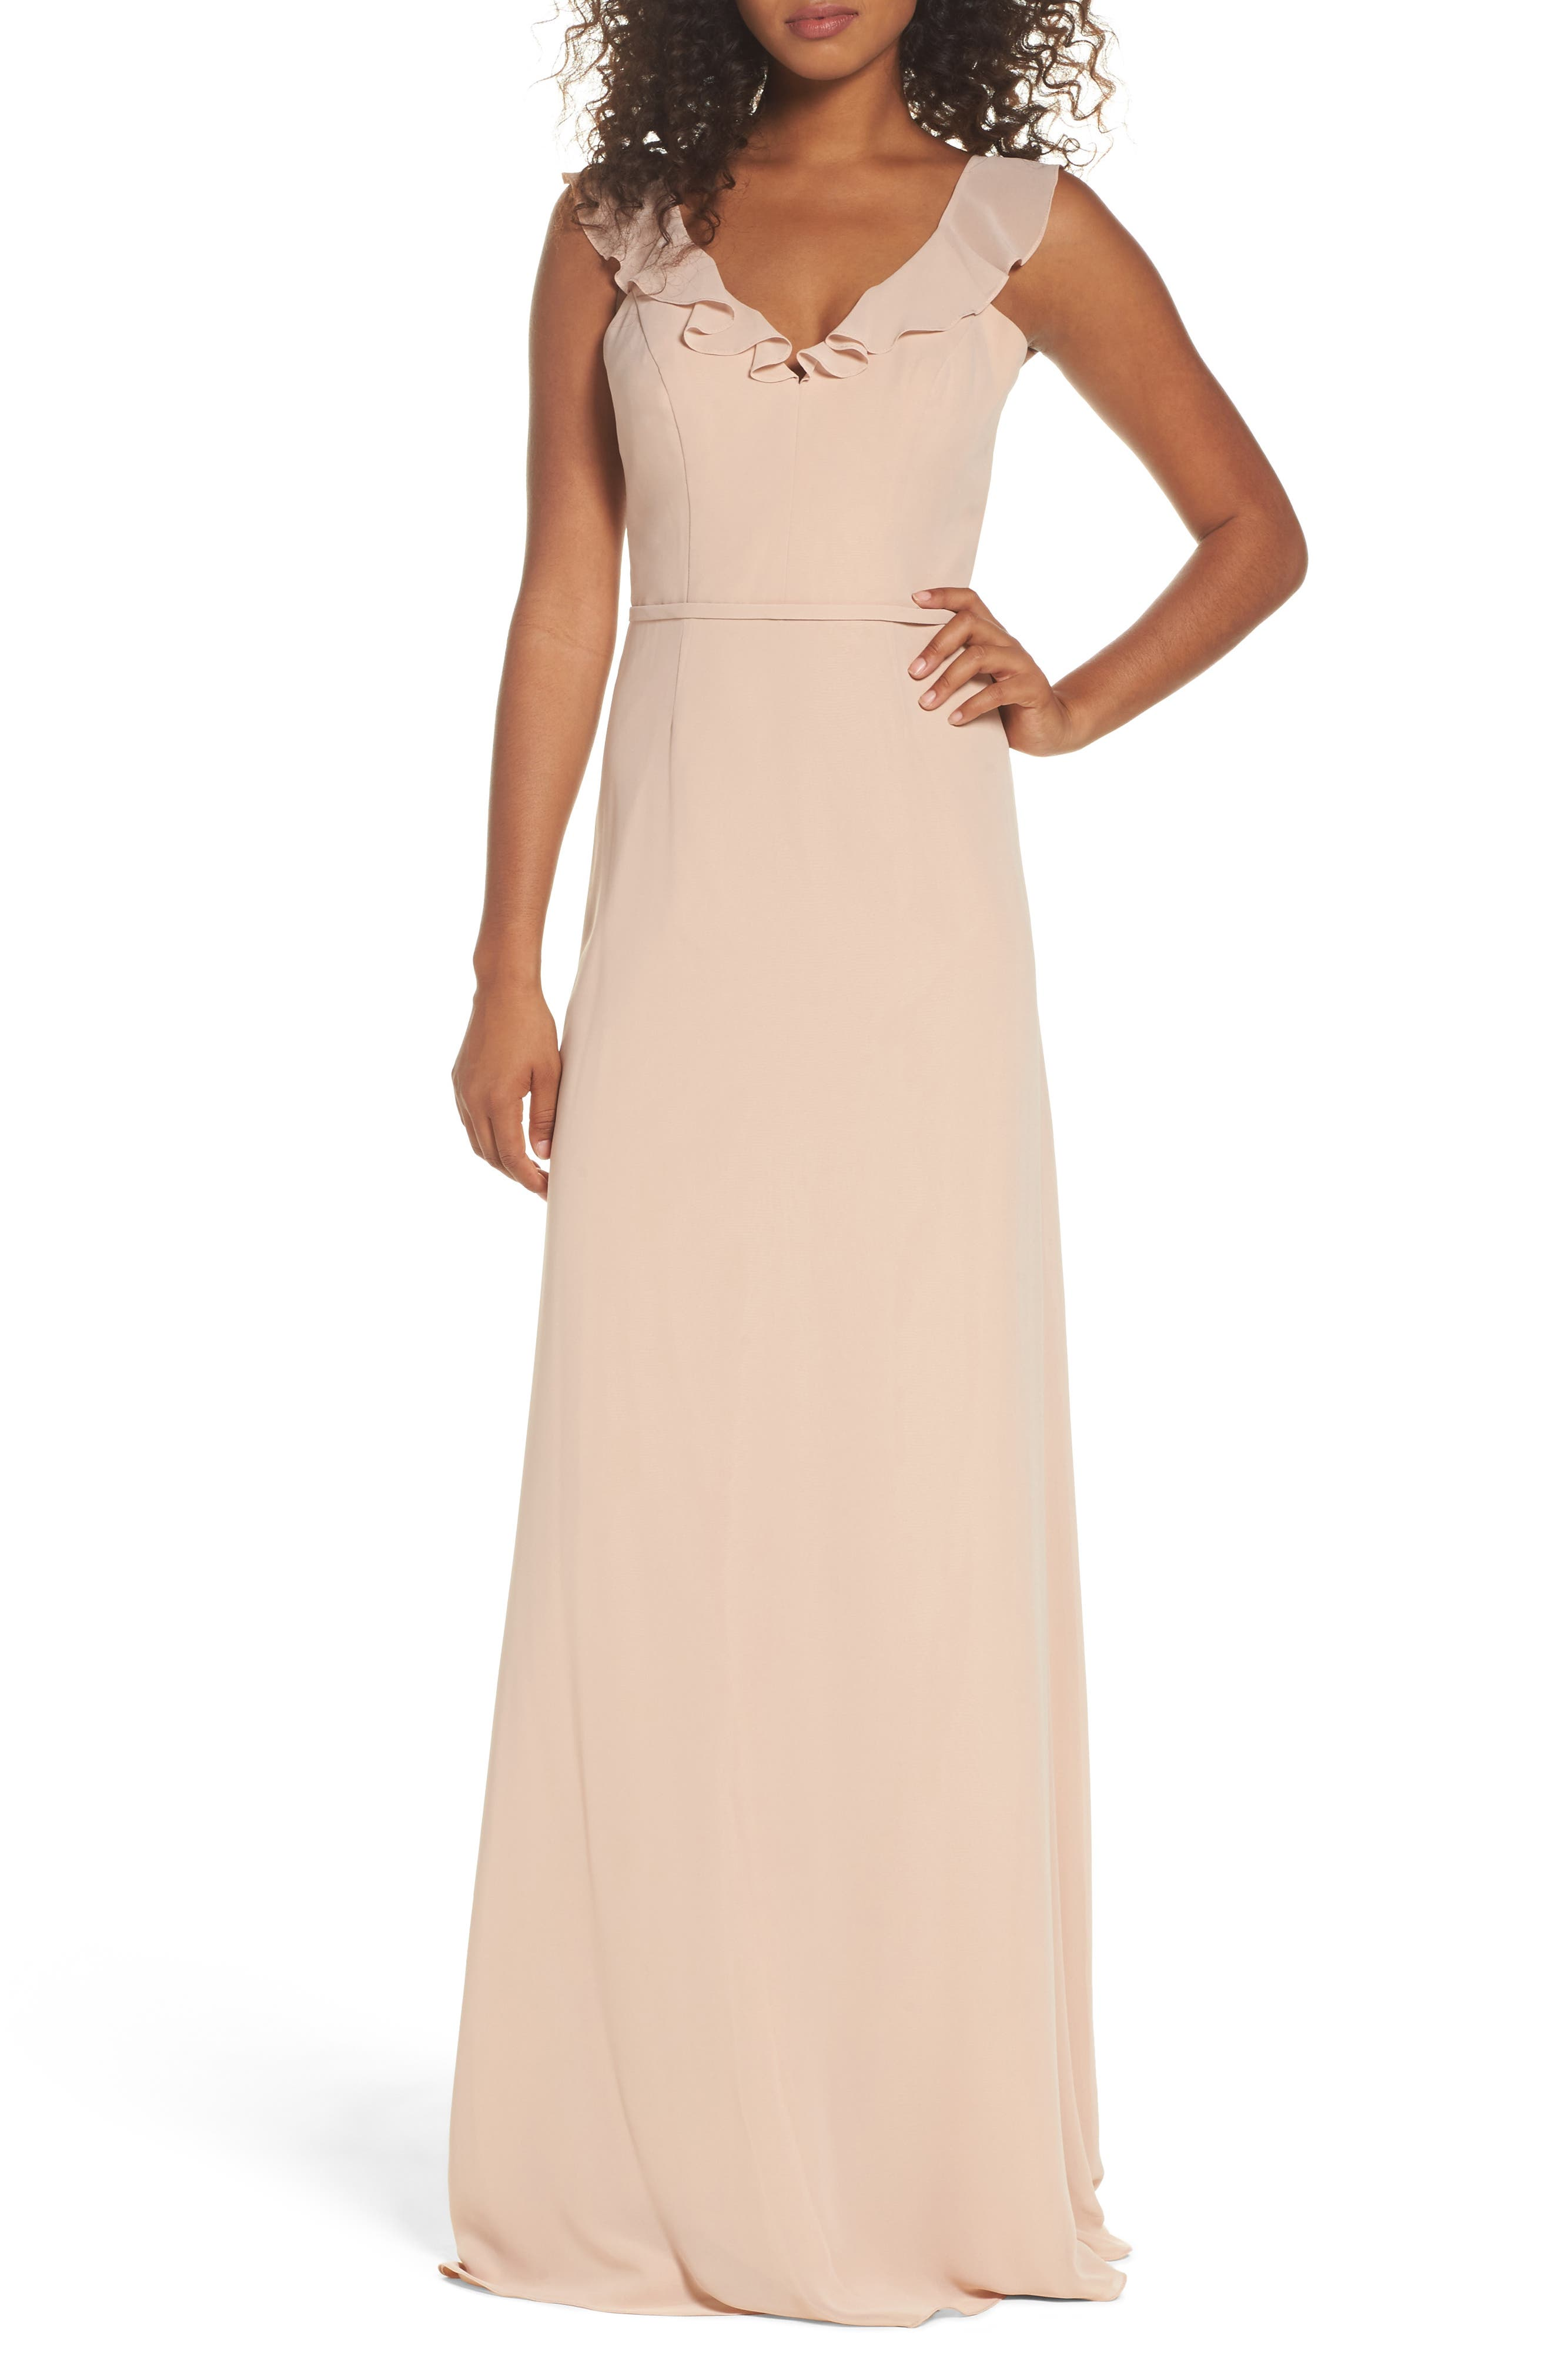 Monique Lhuillier Bridesmaids Keira Backless Chiffon Gown (Nordstrom Exclusive)